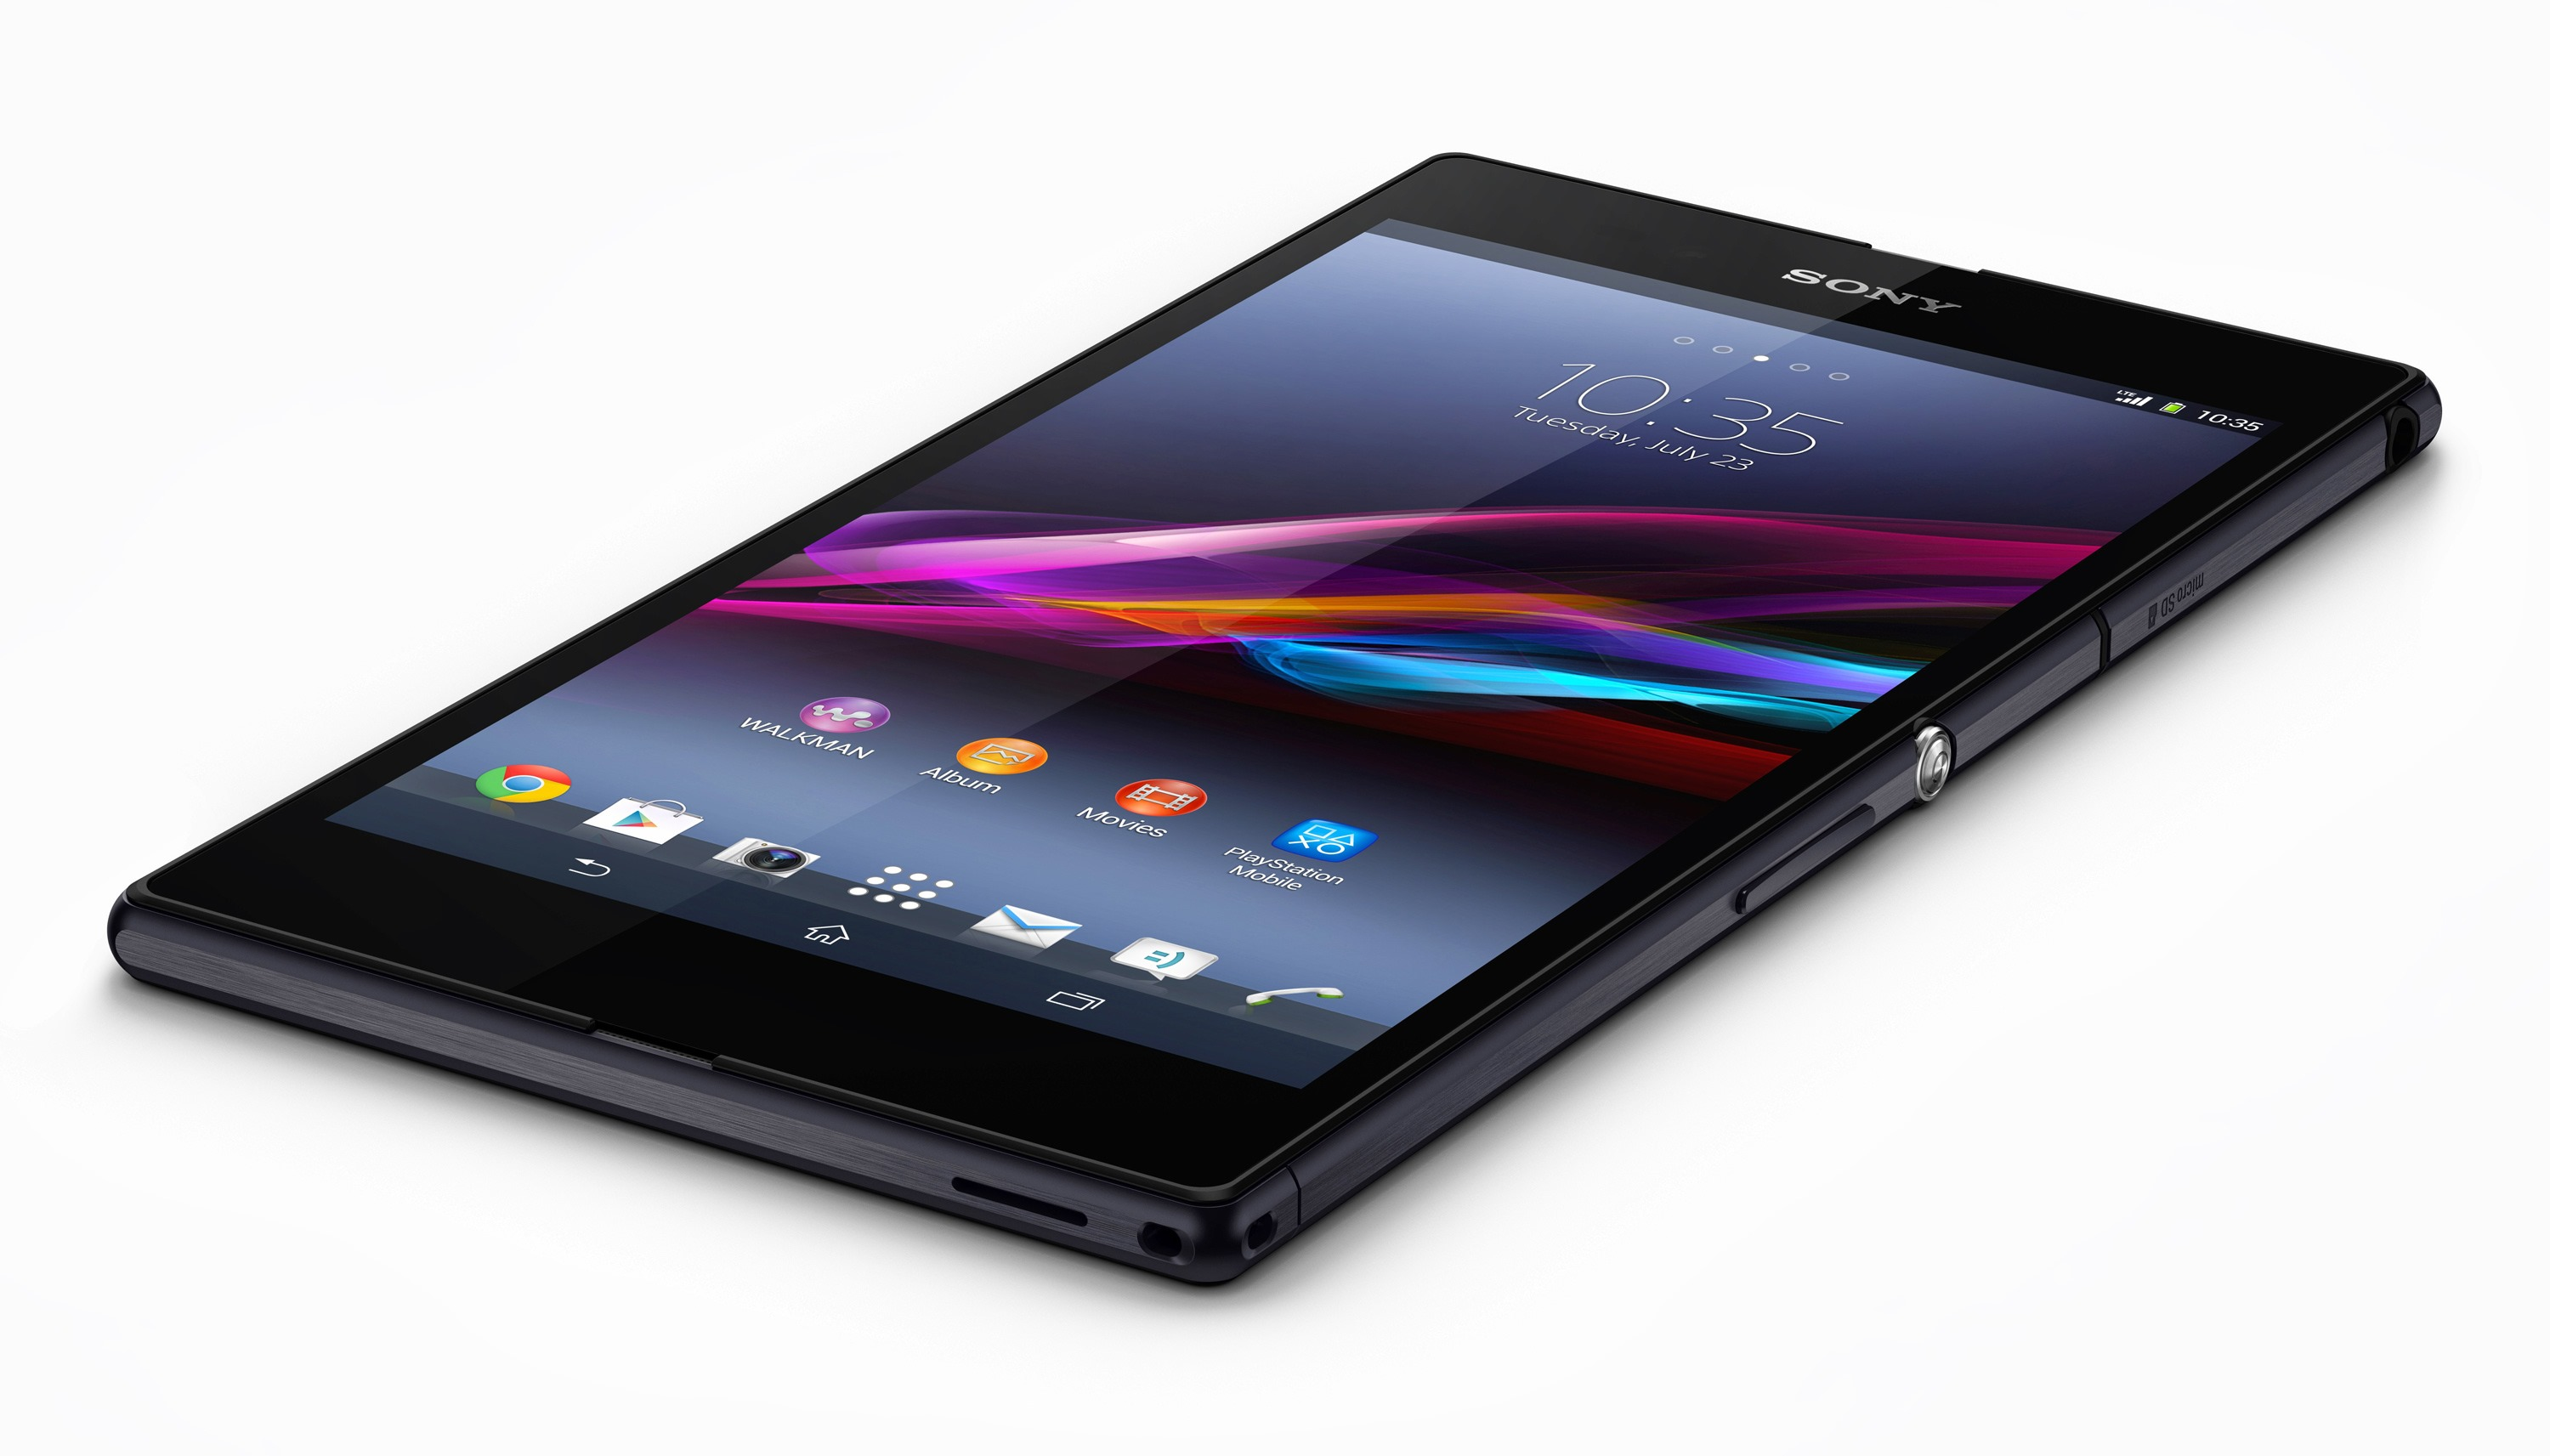 Sony Xperia Z1, Z1 Compact and Z Ultra updated to Android 5.0.2 Lollipop 2